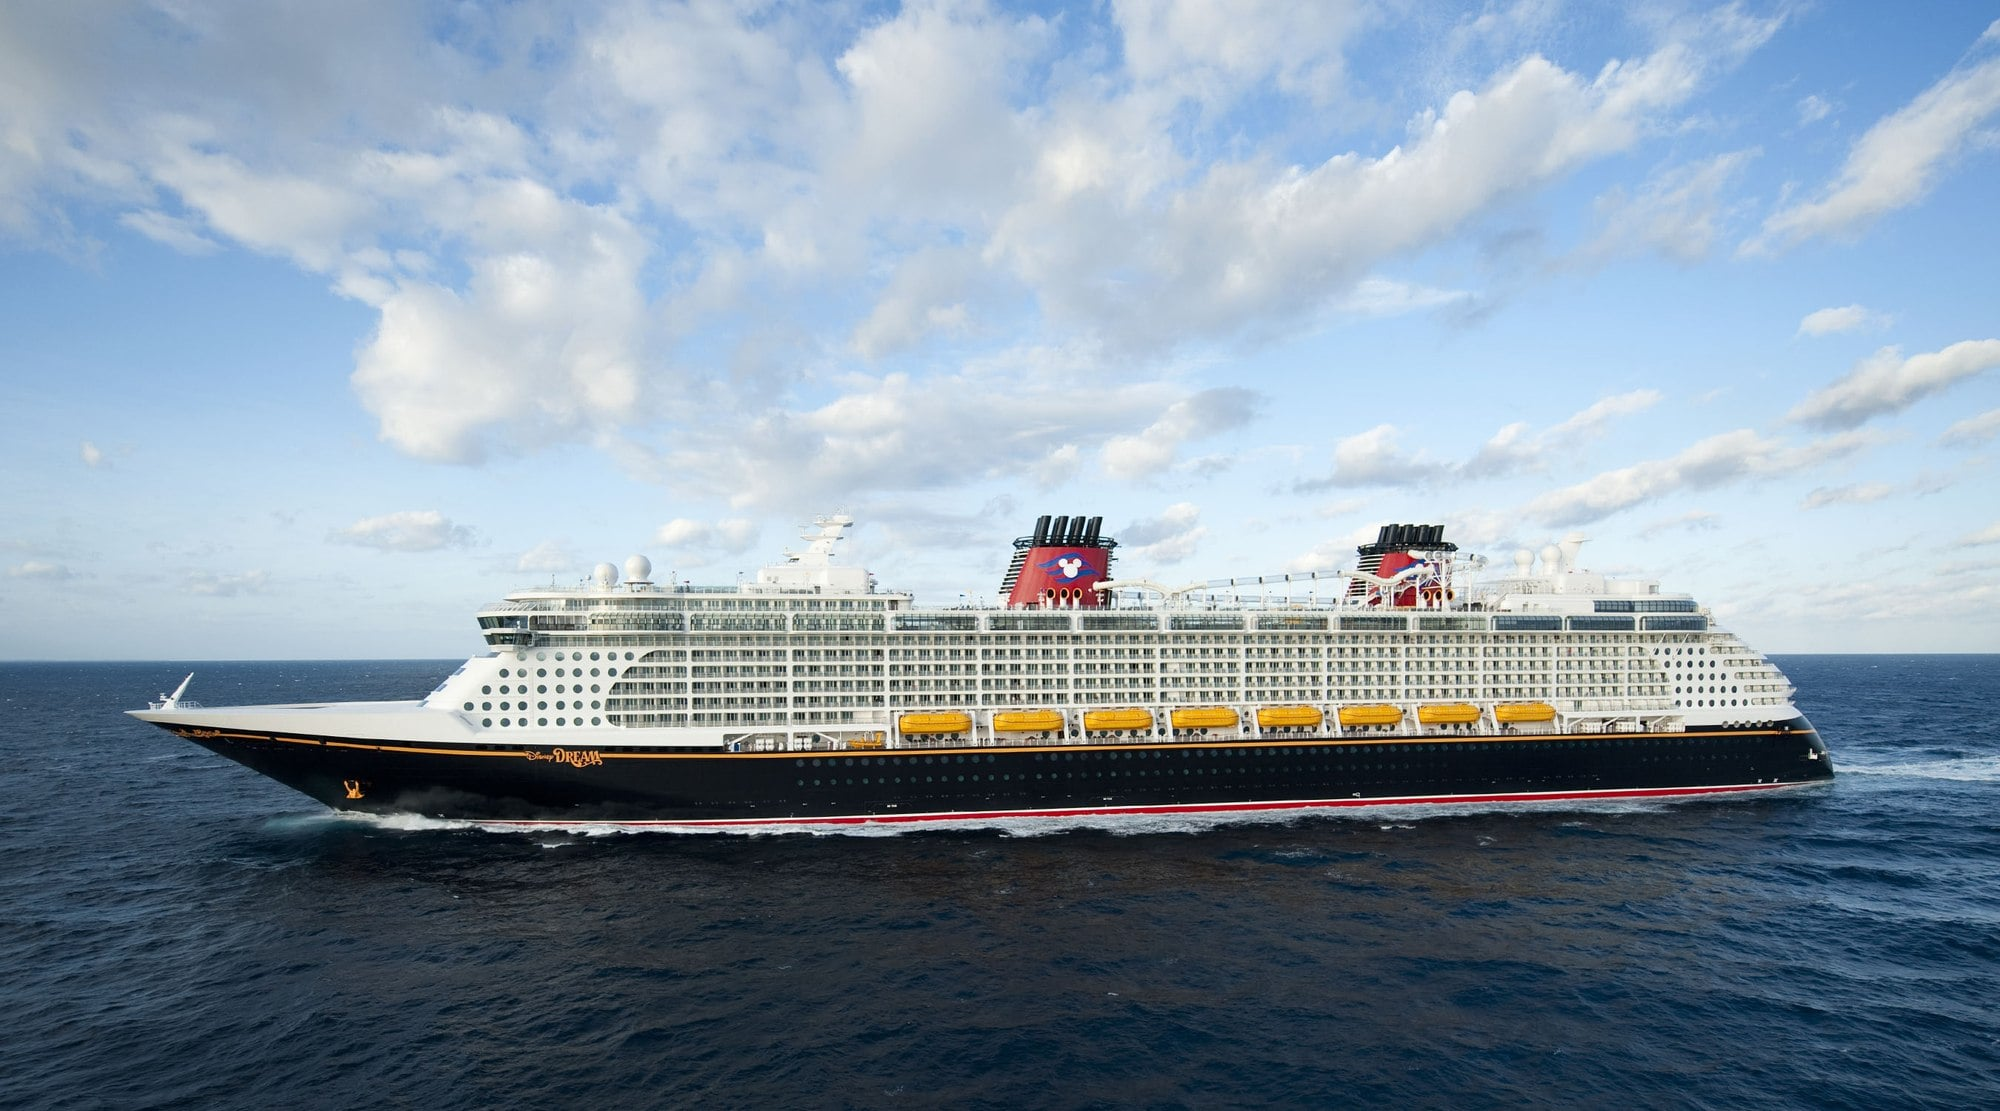 Disney Dream with babies, toddlers and children